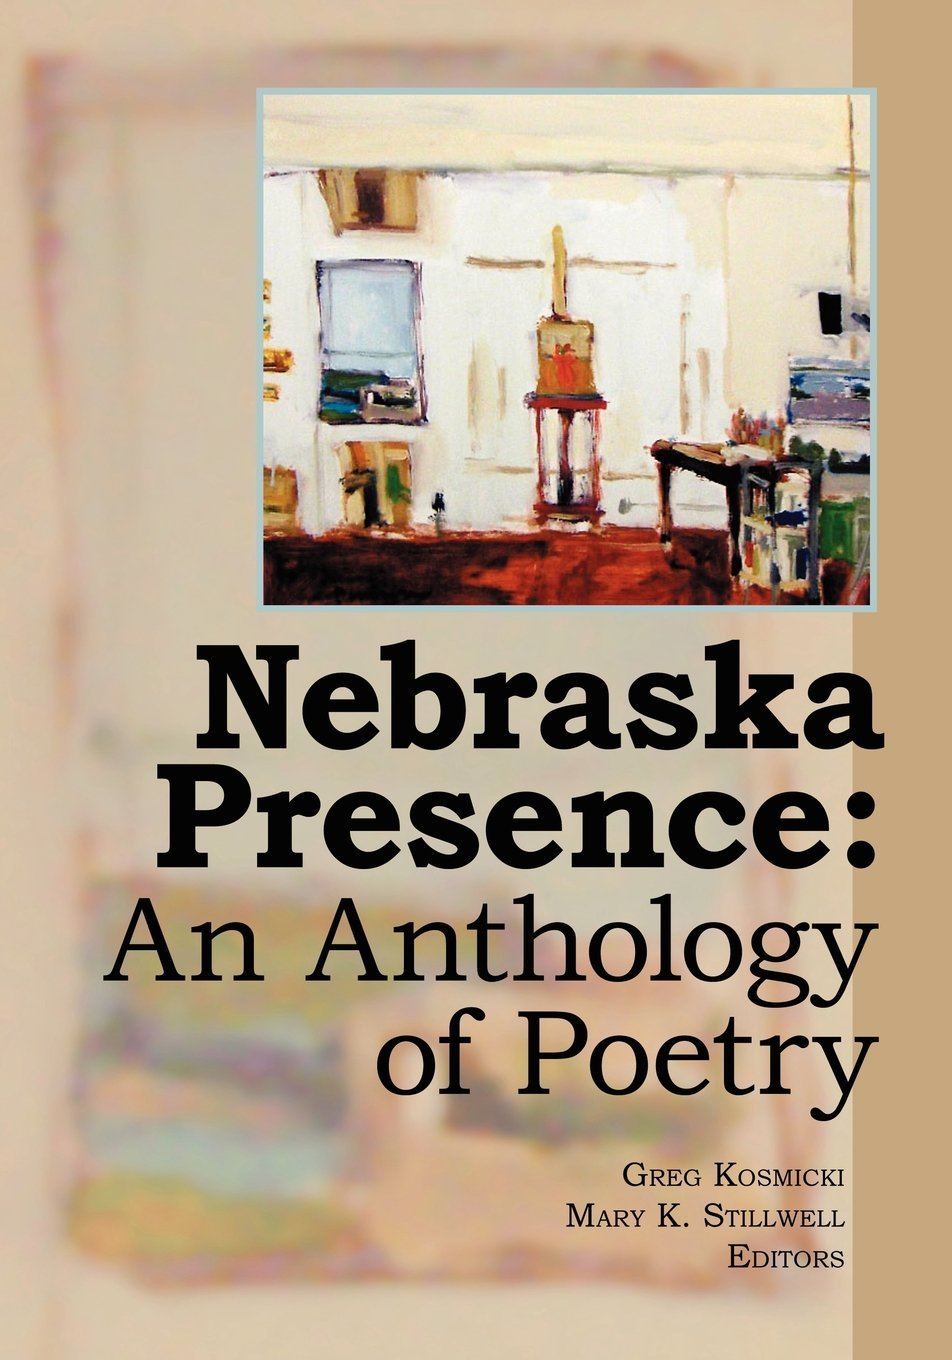 Selected as the 2018 One Book One Nebraska